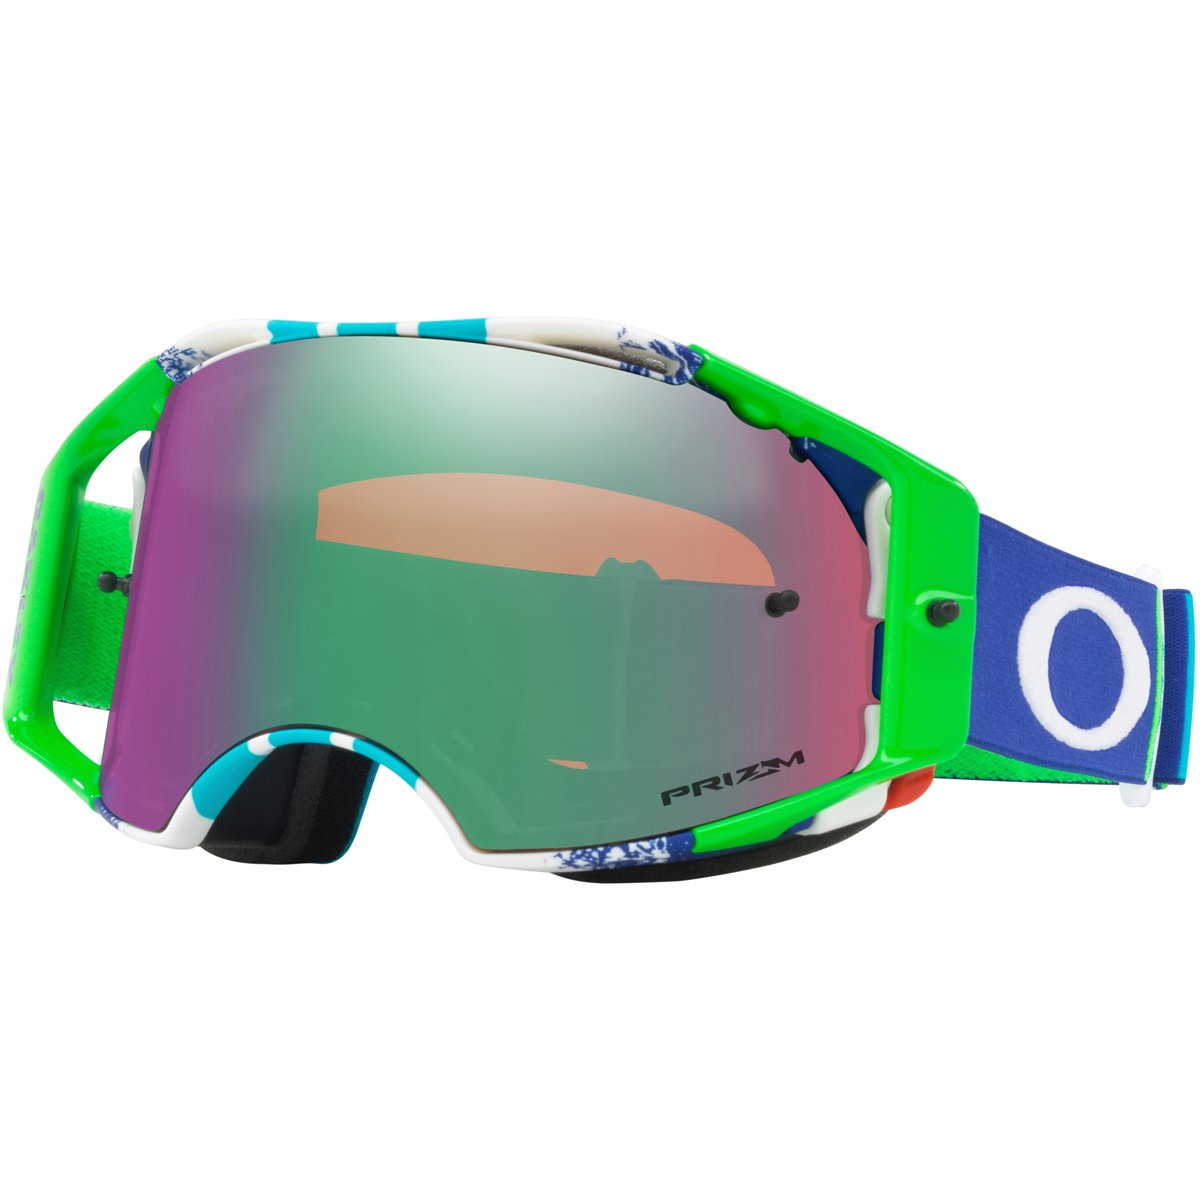 Oakley ABMX Pinned Race BlueGrn with Prizm MX Jade unisex-adult Goggles (Green, Medium), 1 Pack